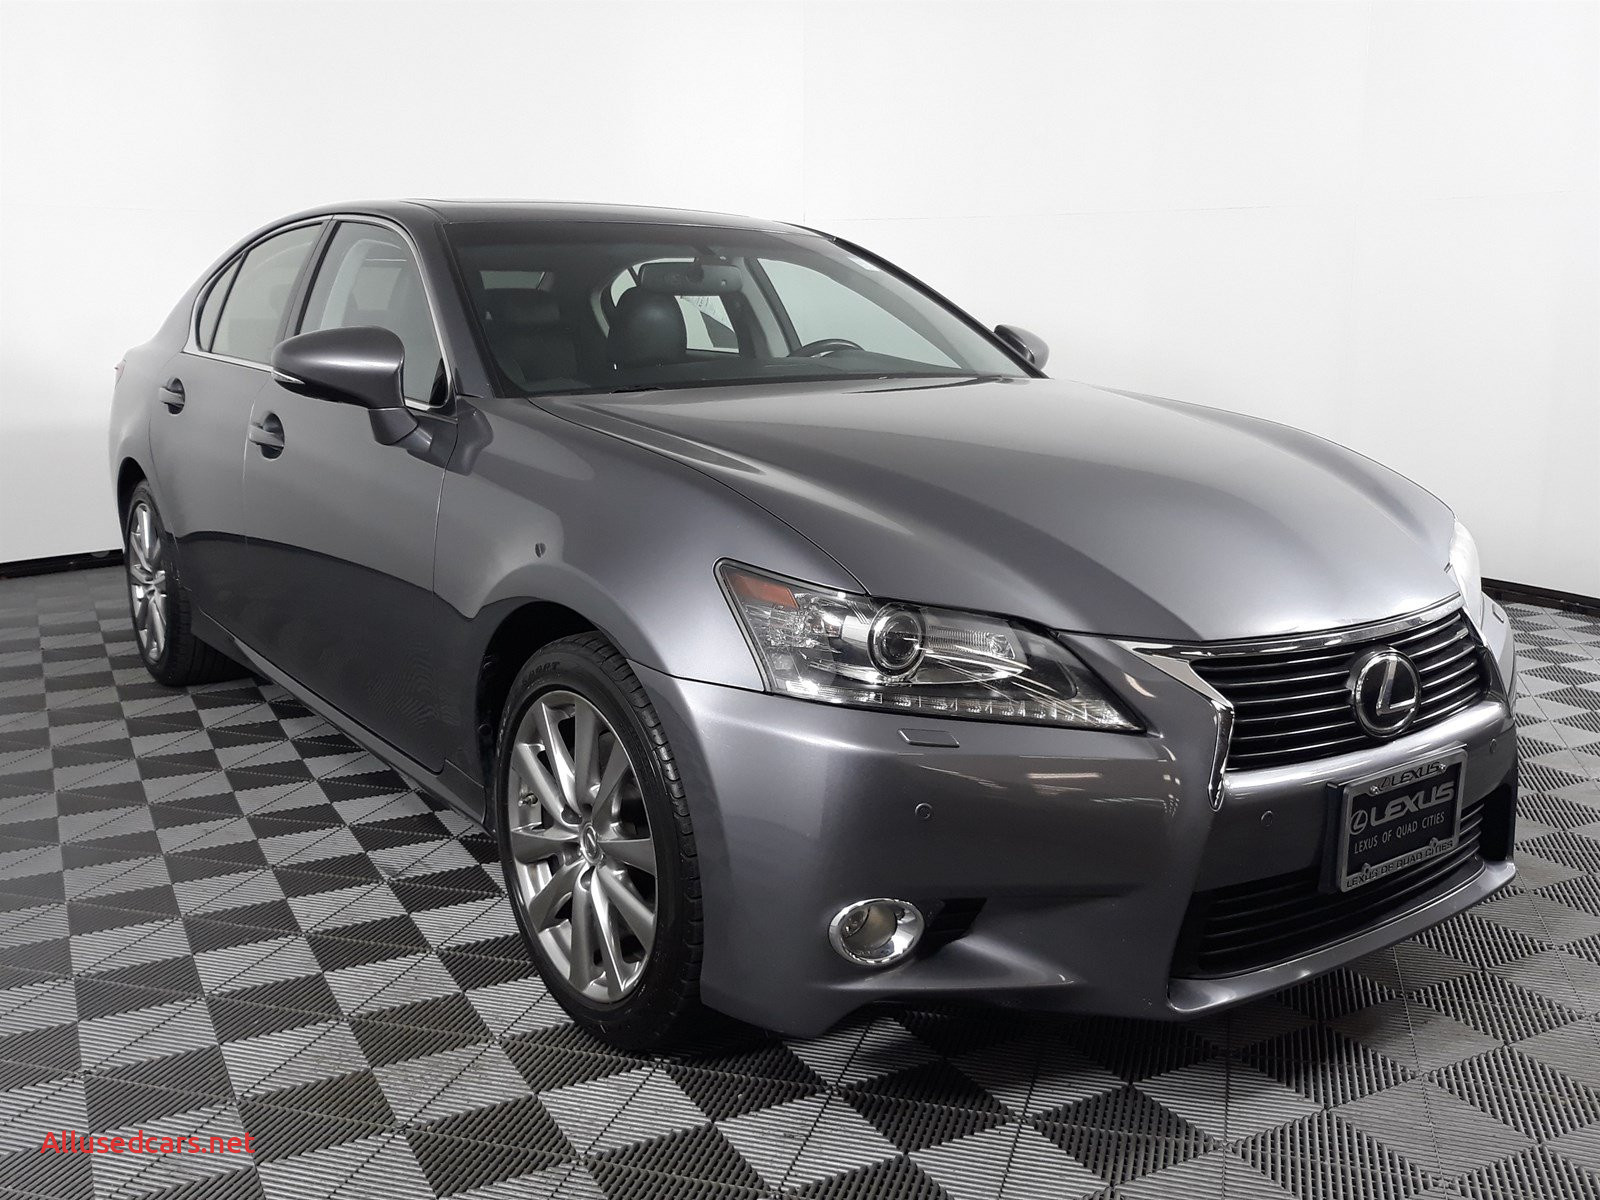 2013 Lexus Gs 350 Awesome Pre Owned 2013 Lexus Gs 350 350 4dr Car In Davenport